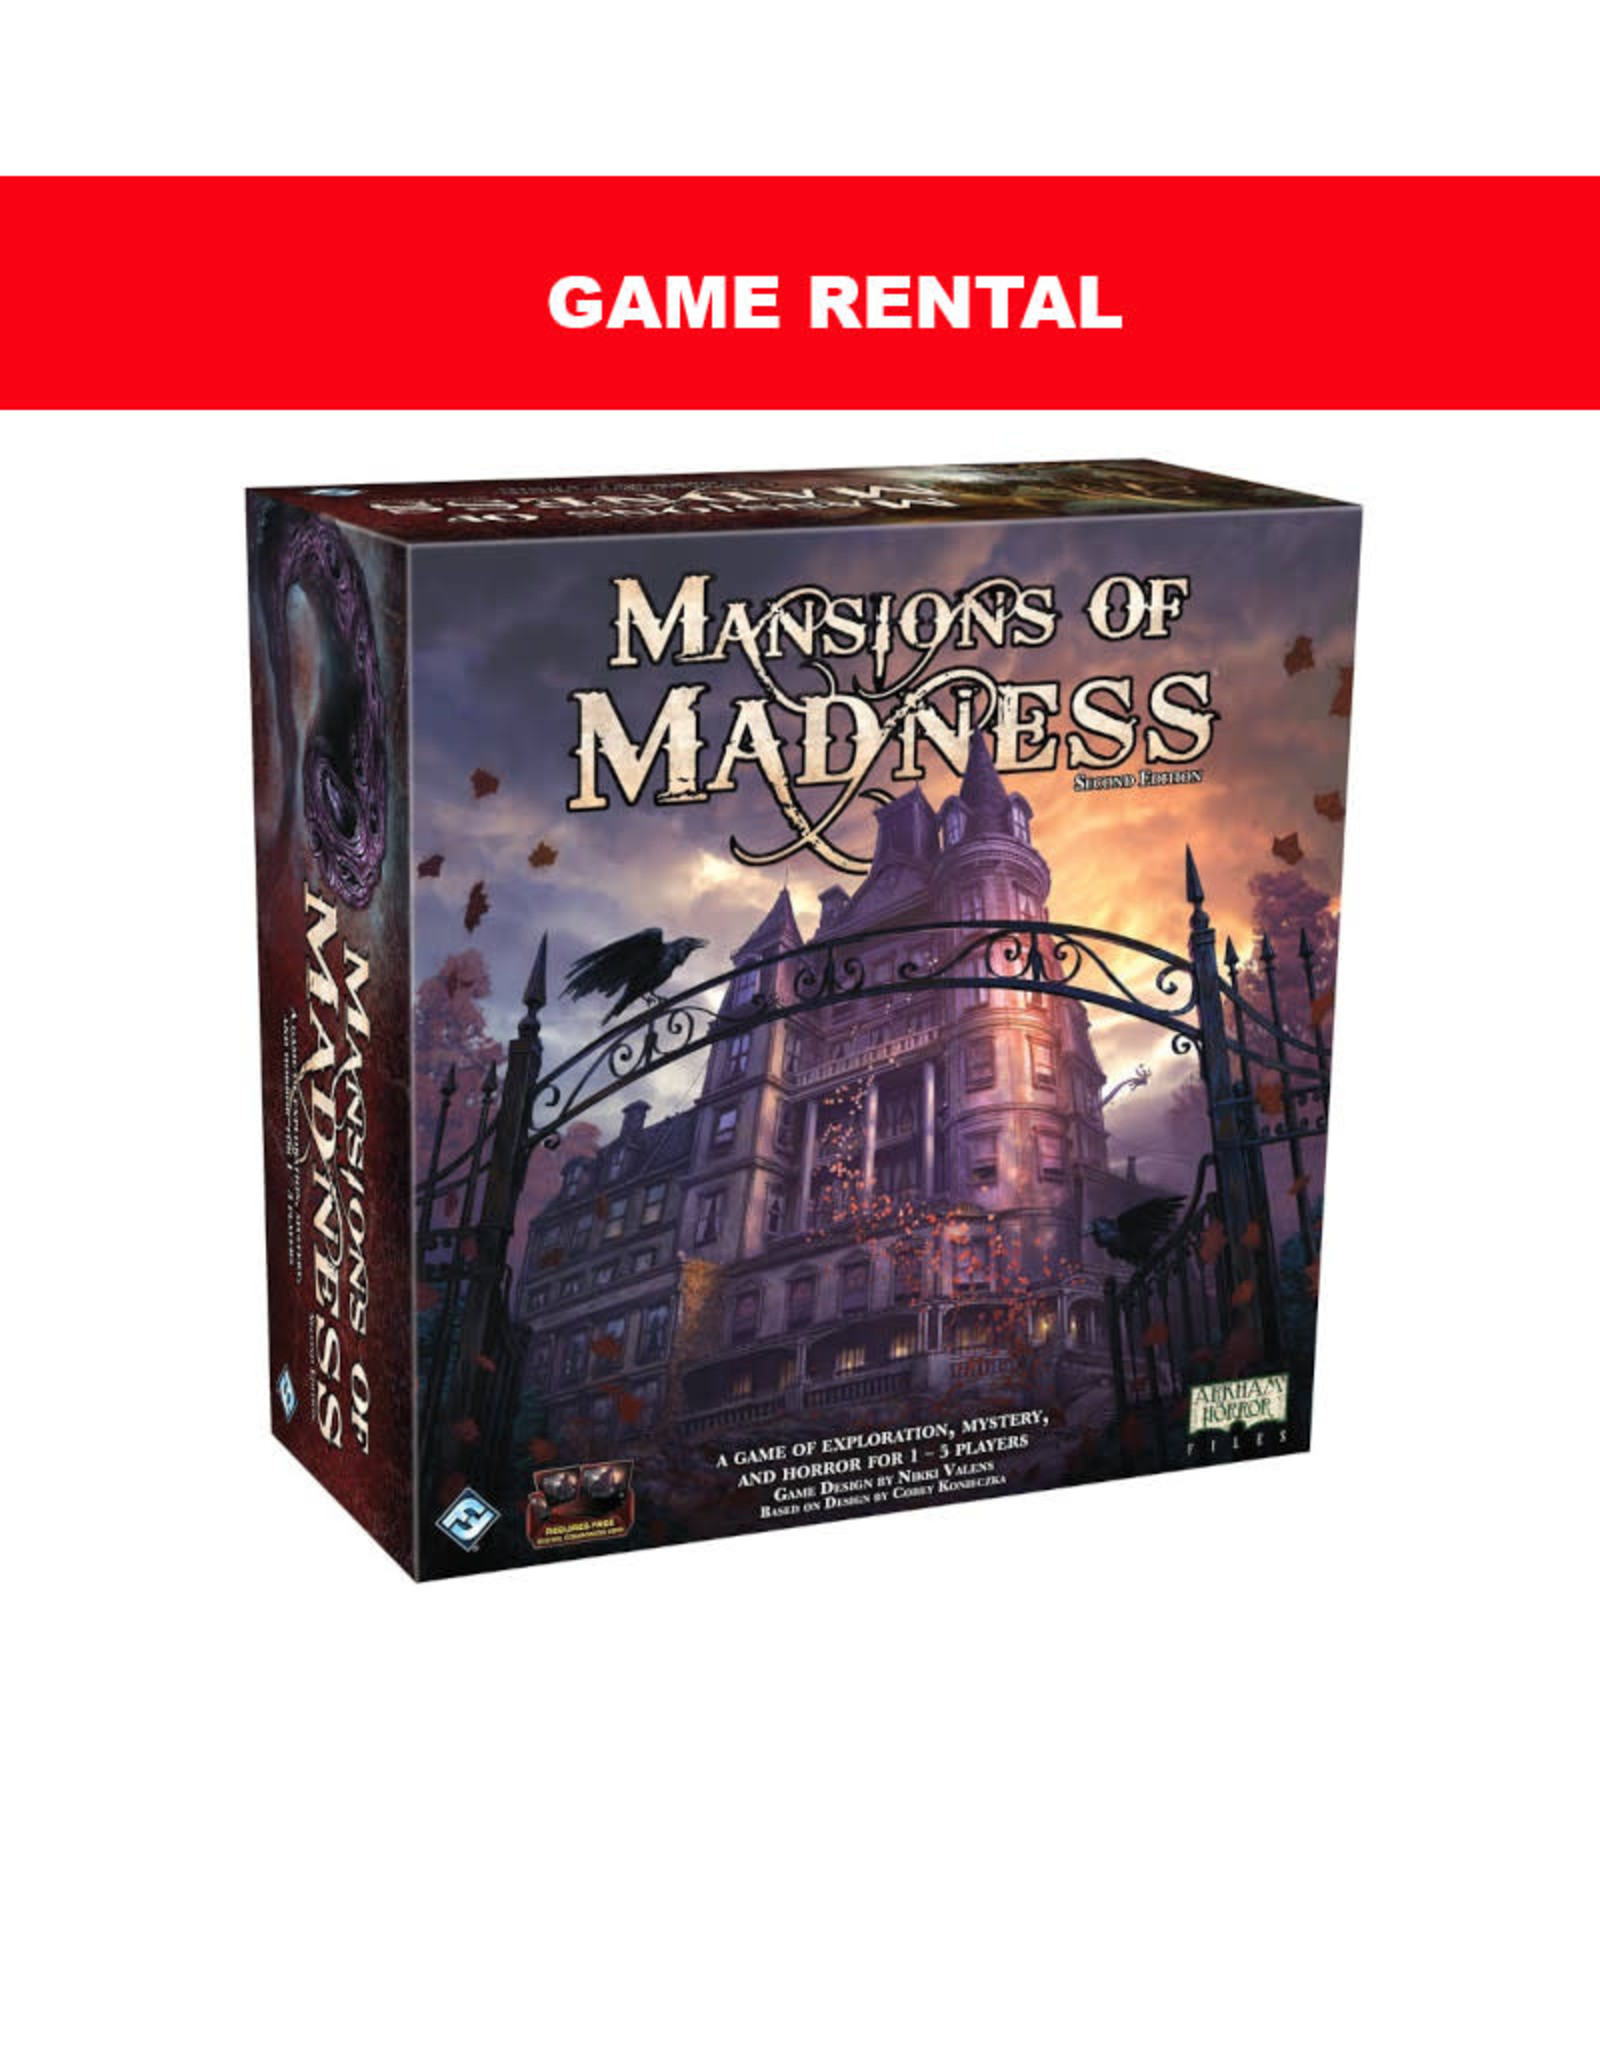 (RENT) Mansions of Madness for a Day. Love It! Buy It!